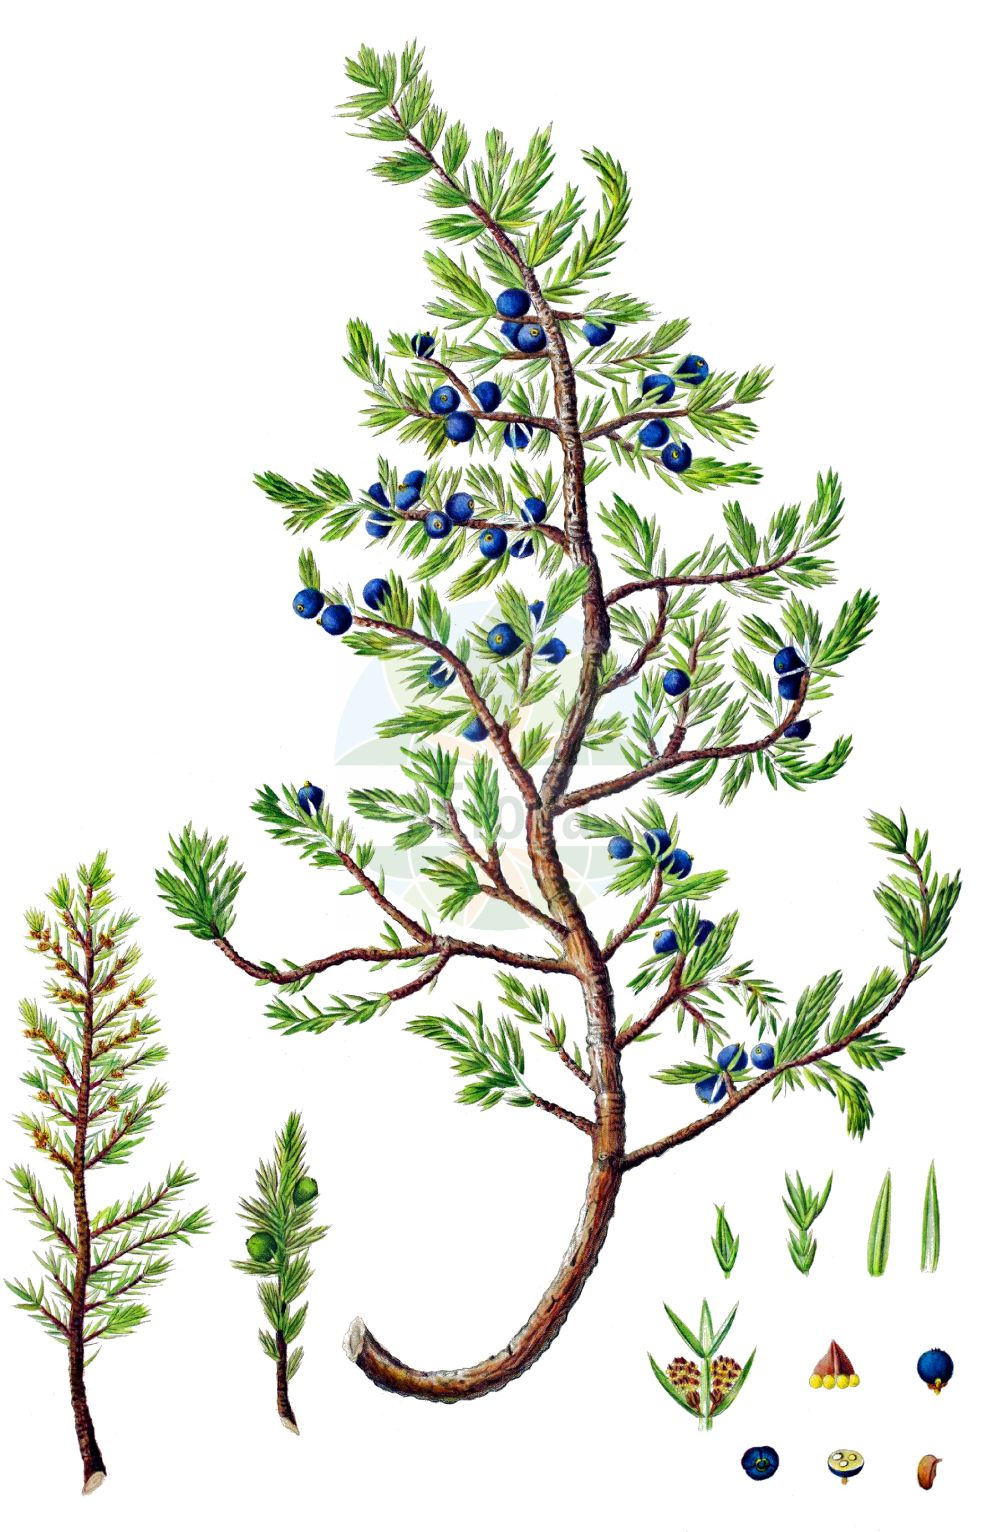 Historische Abbildung von Juniperus communis subsp. nana (Zwerg-Wacholder - Dwarf Juniper). Das Bild zeigt Blatt, Bluete, Frucht und Same. ---- Historical Drawing of Juniperus communis subsp. nana (Zwerg-Wacholder - Dwarf Juniper).The image is showing leaf, flower, fruit and seed.(Juniperus communis subsp. nana,Zwerg-Wacholder,Dwarf Juniper,Juniperus sibirica,Zwerg-Wacholder,Dwarf Juniper,Juniperus,Wacholder,Juniper,Cupressaceae,Zypressengewaechse,Cypress family,Blatt,Bluete,Frucht,Same,leaf,flower,fruit,seed,Oeder (1761-1883))